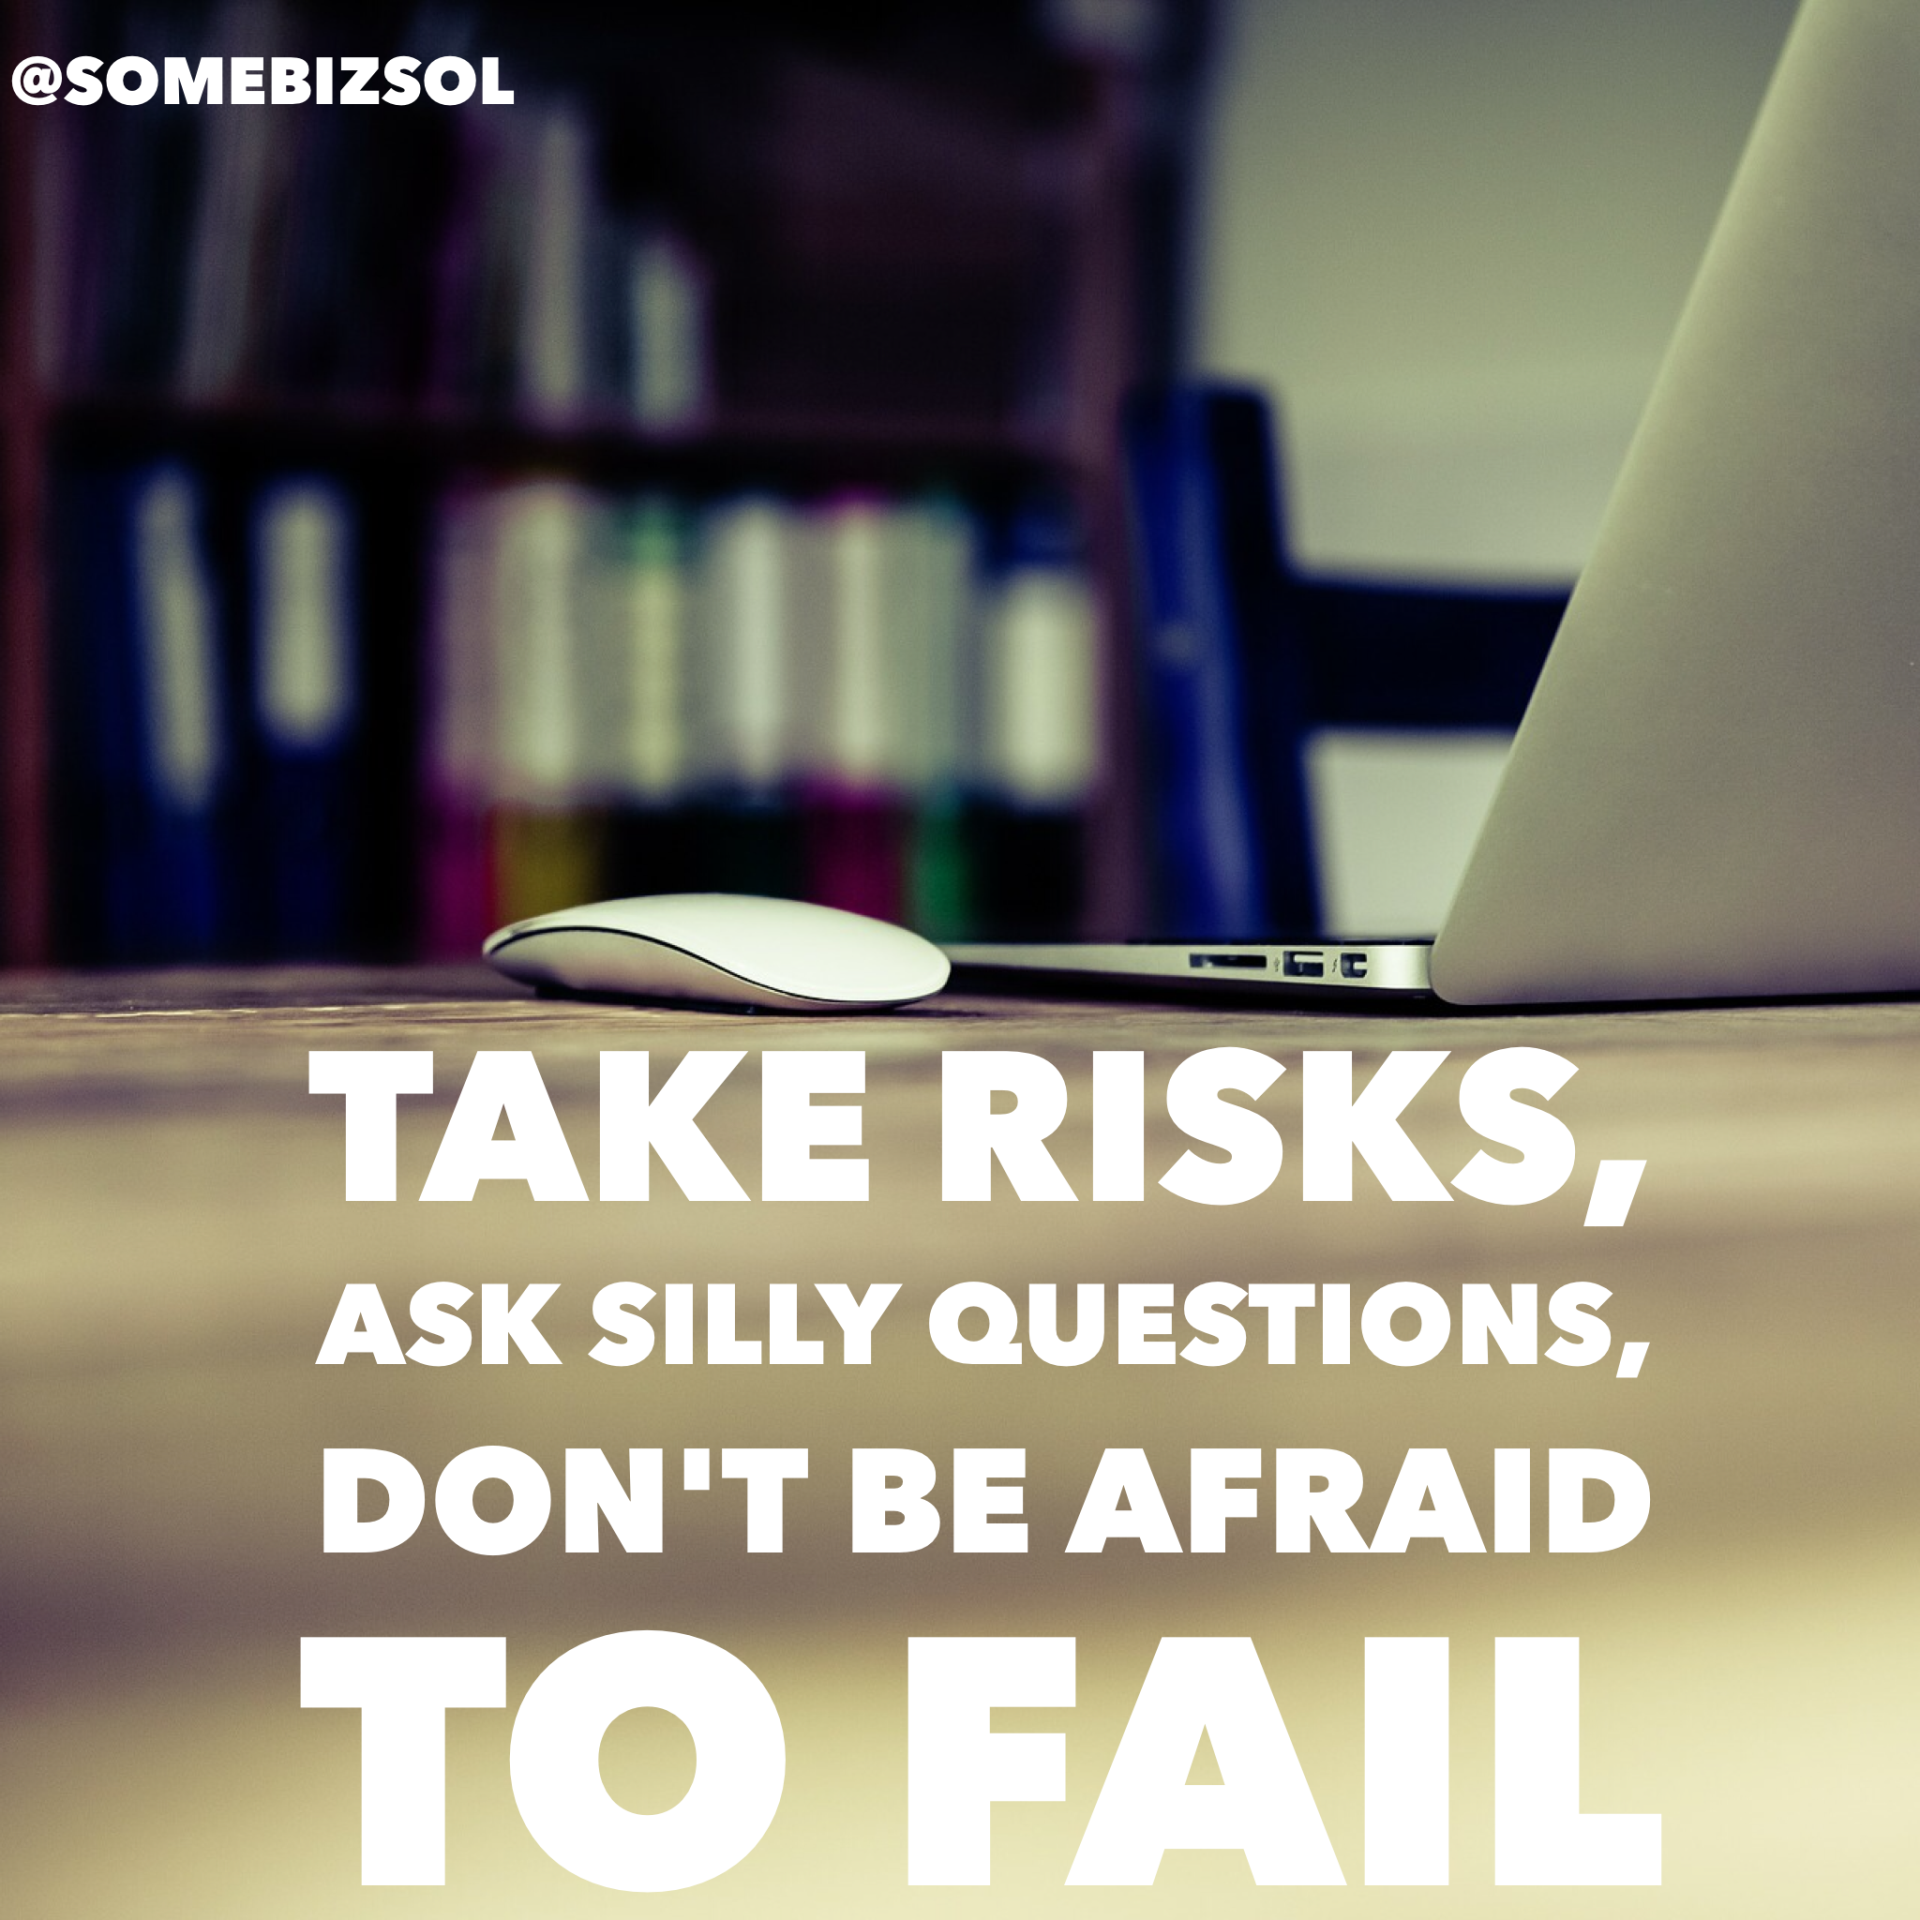 Take risks, ask silly questions, don't be afraid to fail